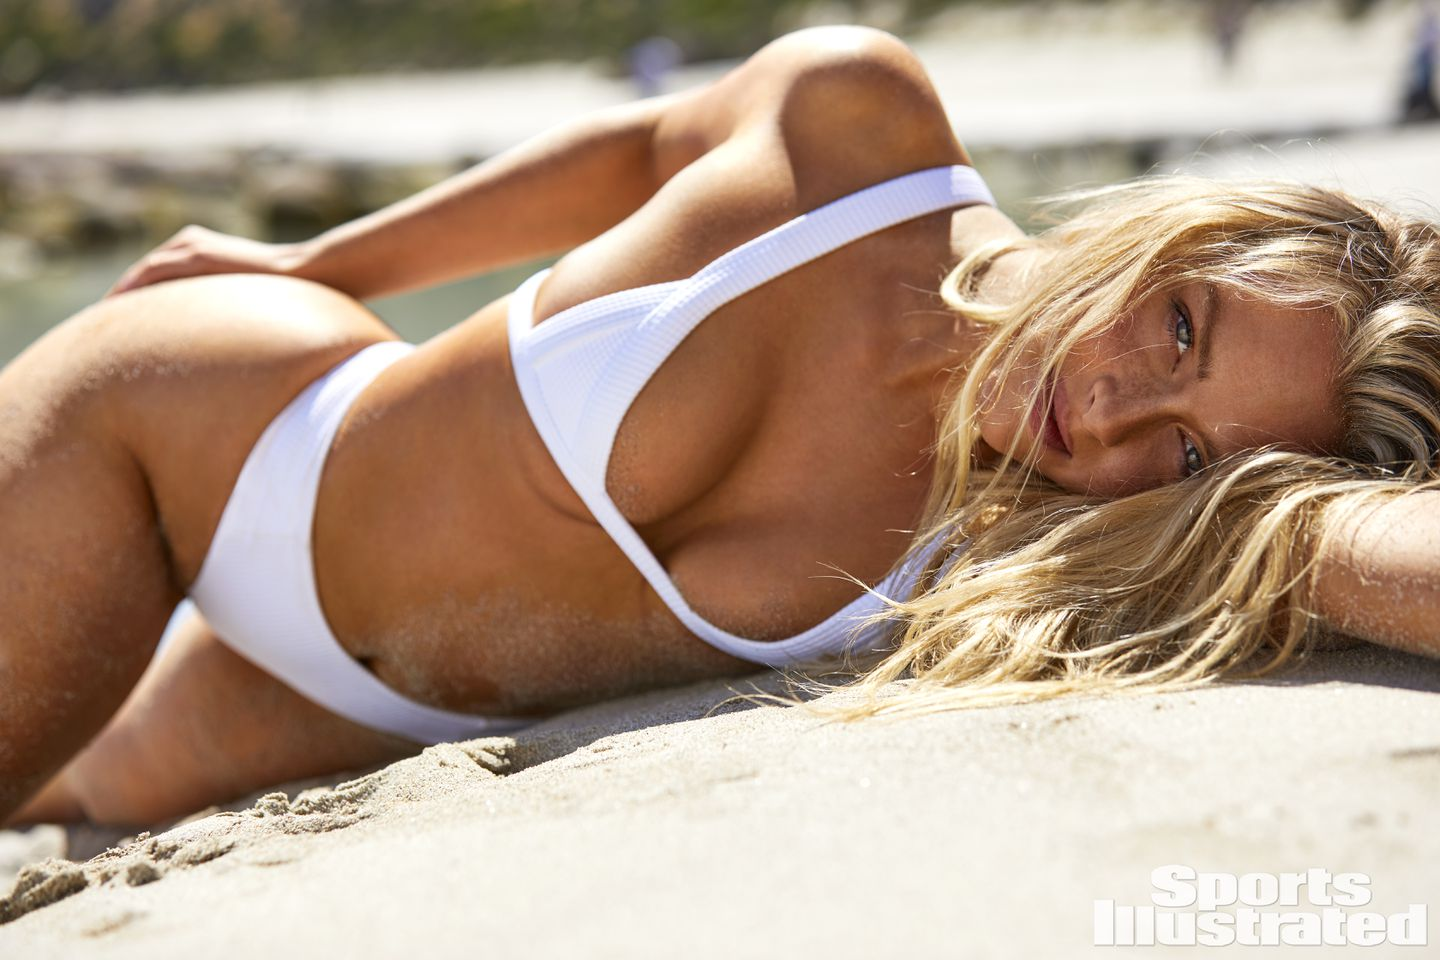 Camille Kostek Is A 2019 Sports Illustrated Swimsuit Issue Cover Model The Boston Globe